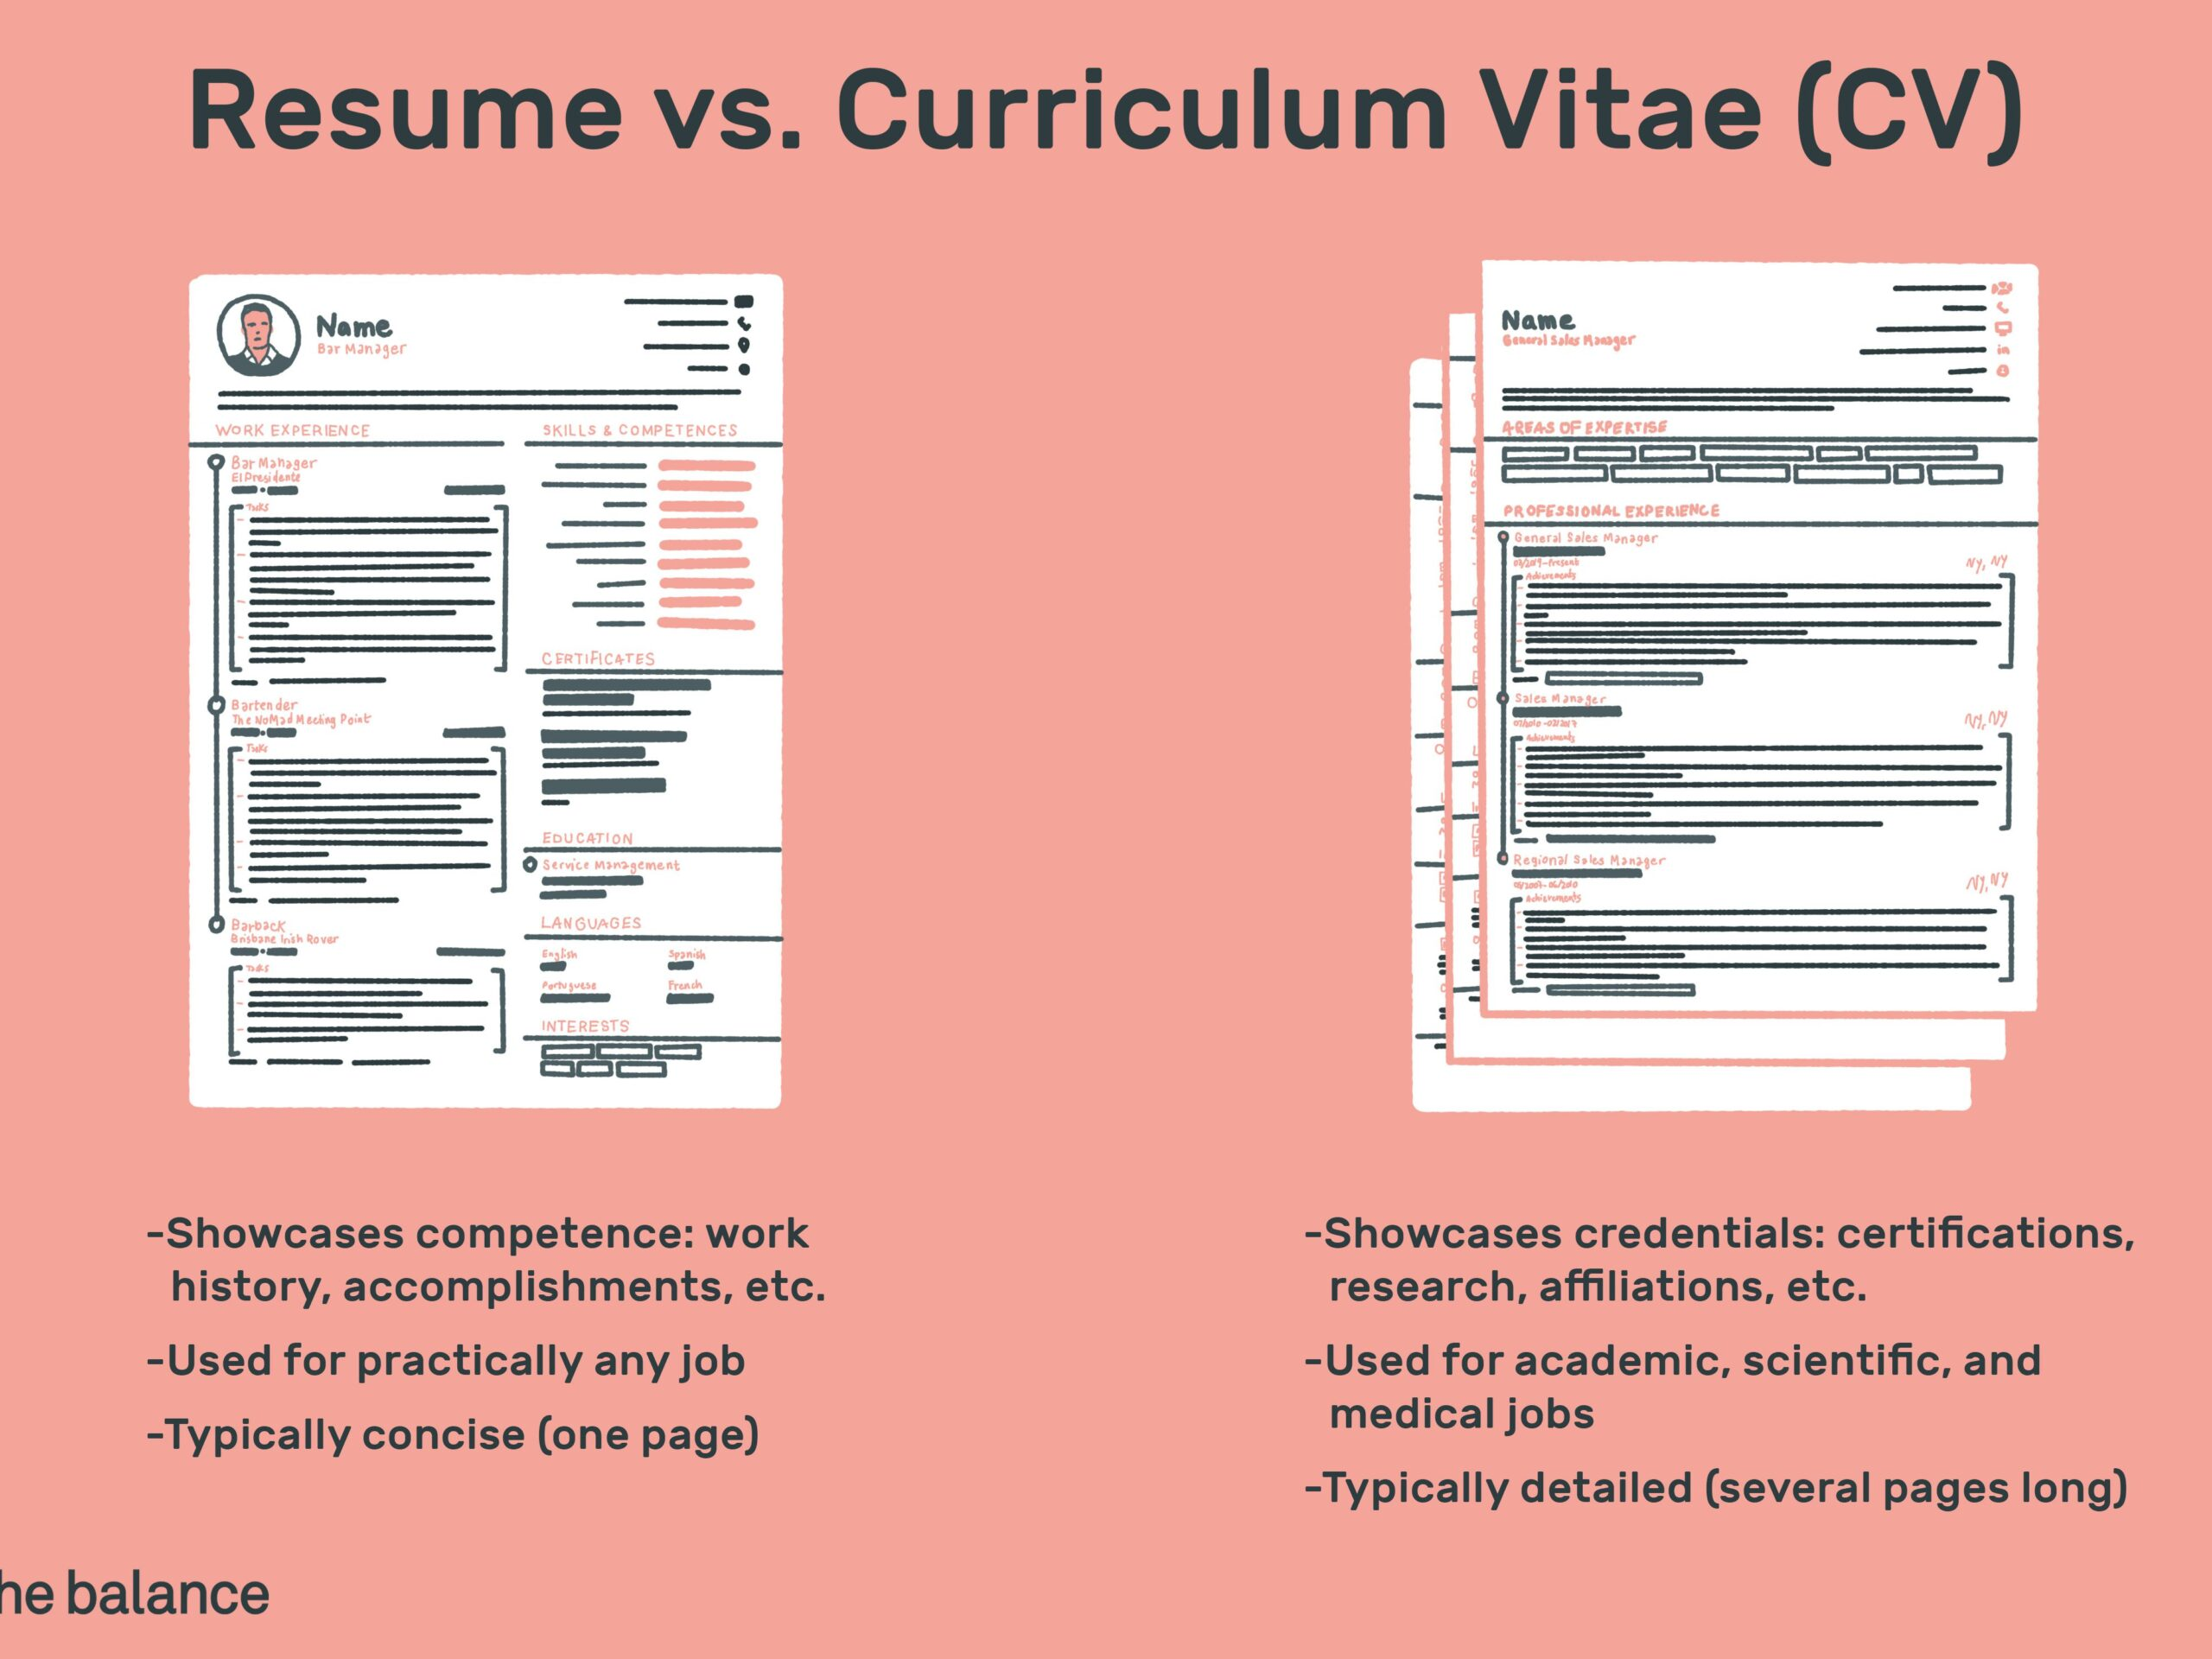 the difference between resume and curriculum vitae biodata cv vs final public service Resume Difference Between Curriculum Vitae And Resume And Biodata